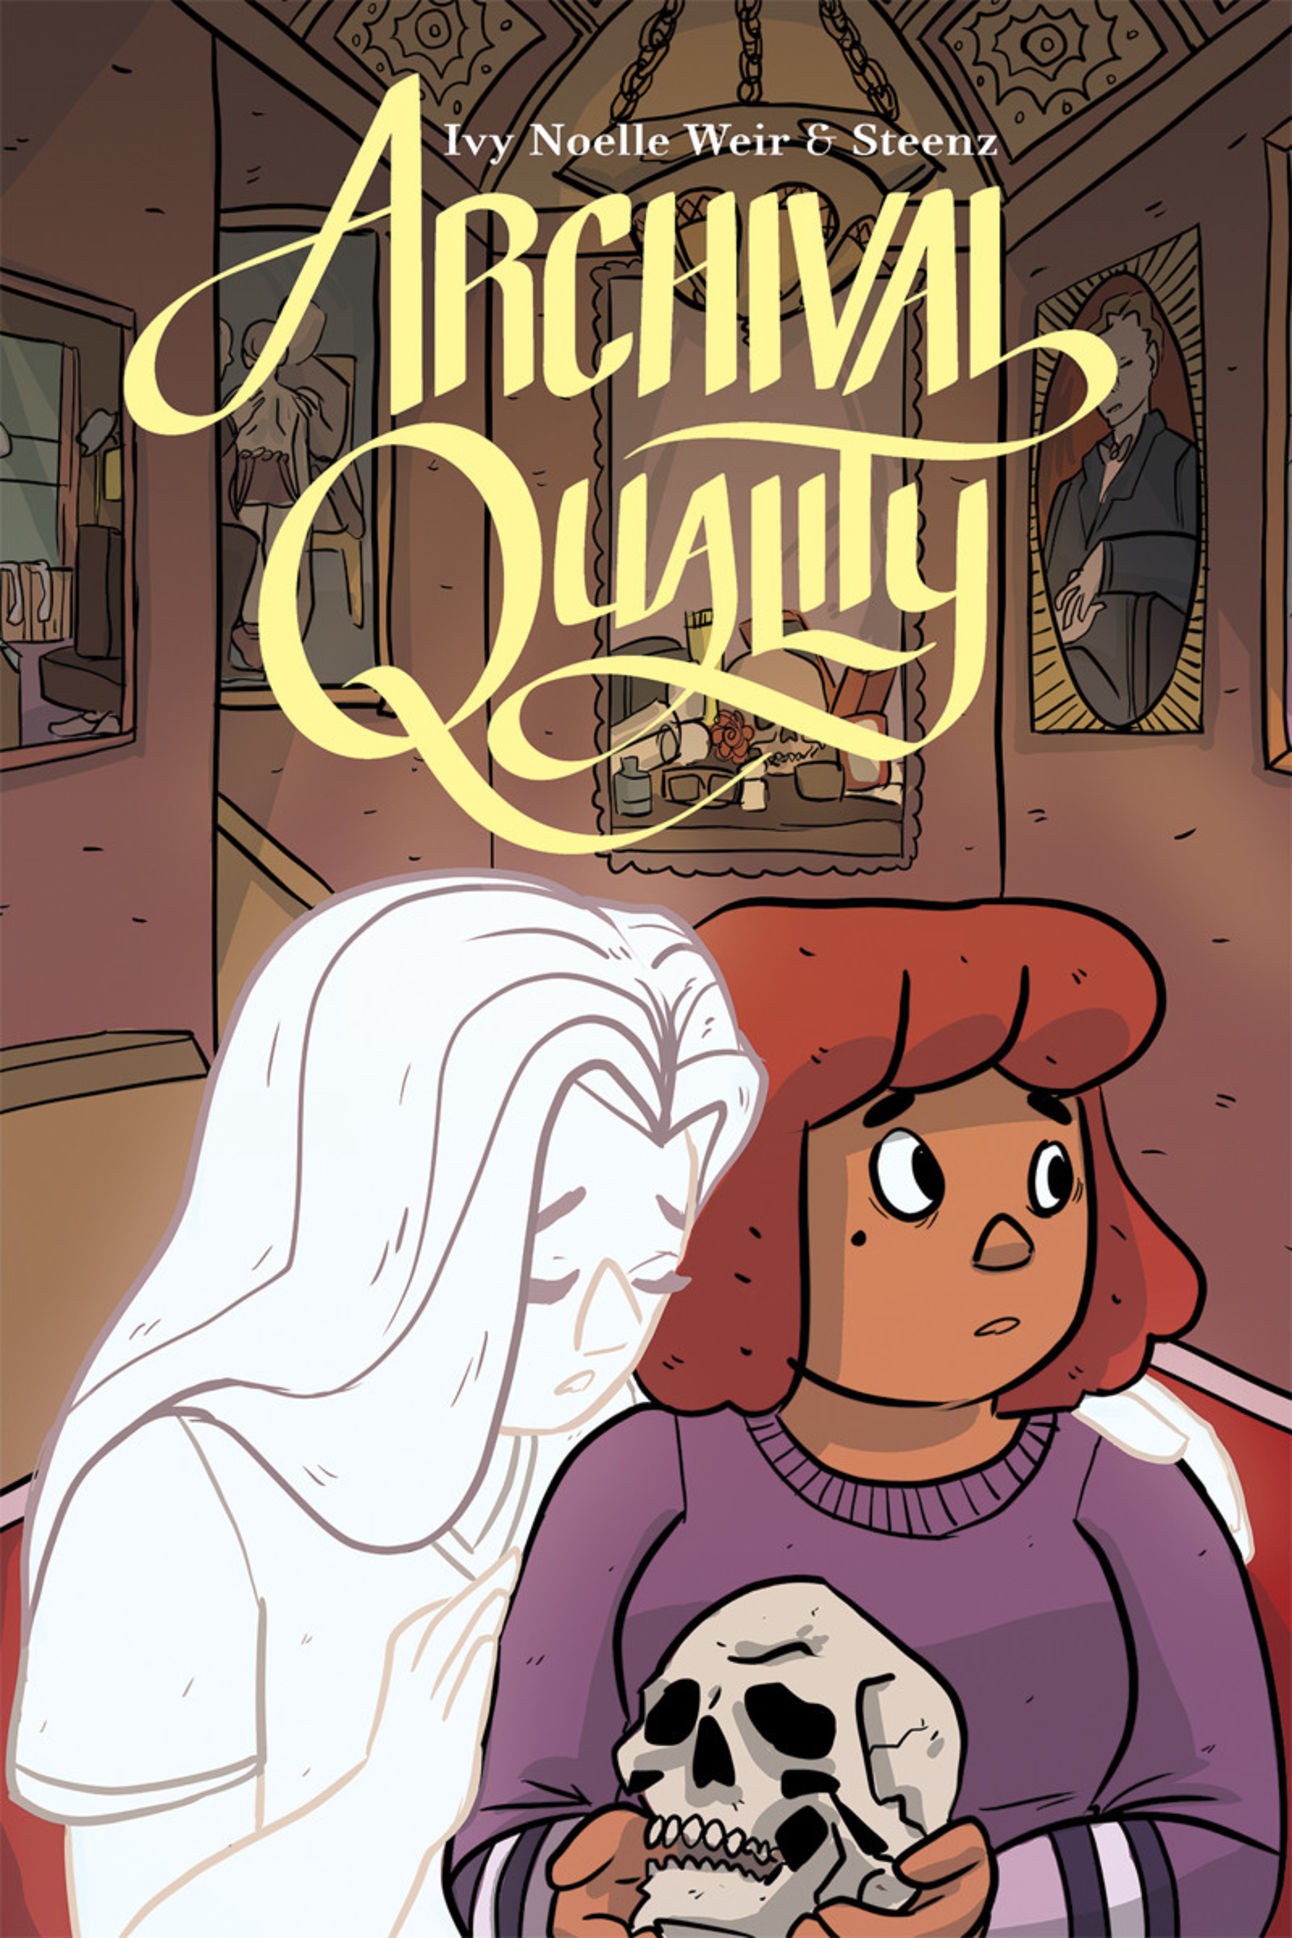 oni_archival_quality_ogn_cover.jpg